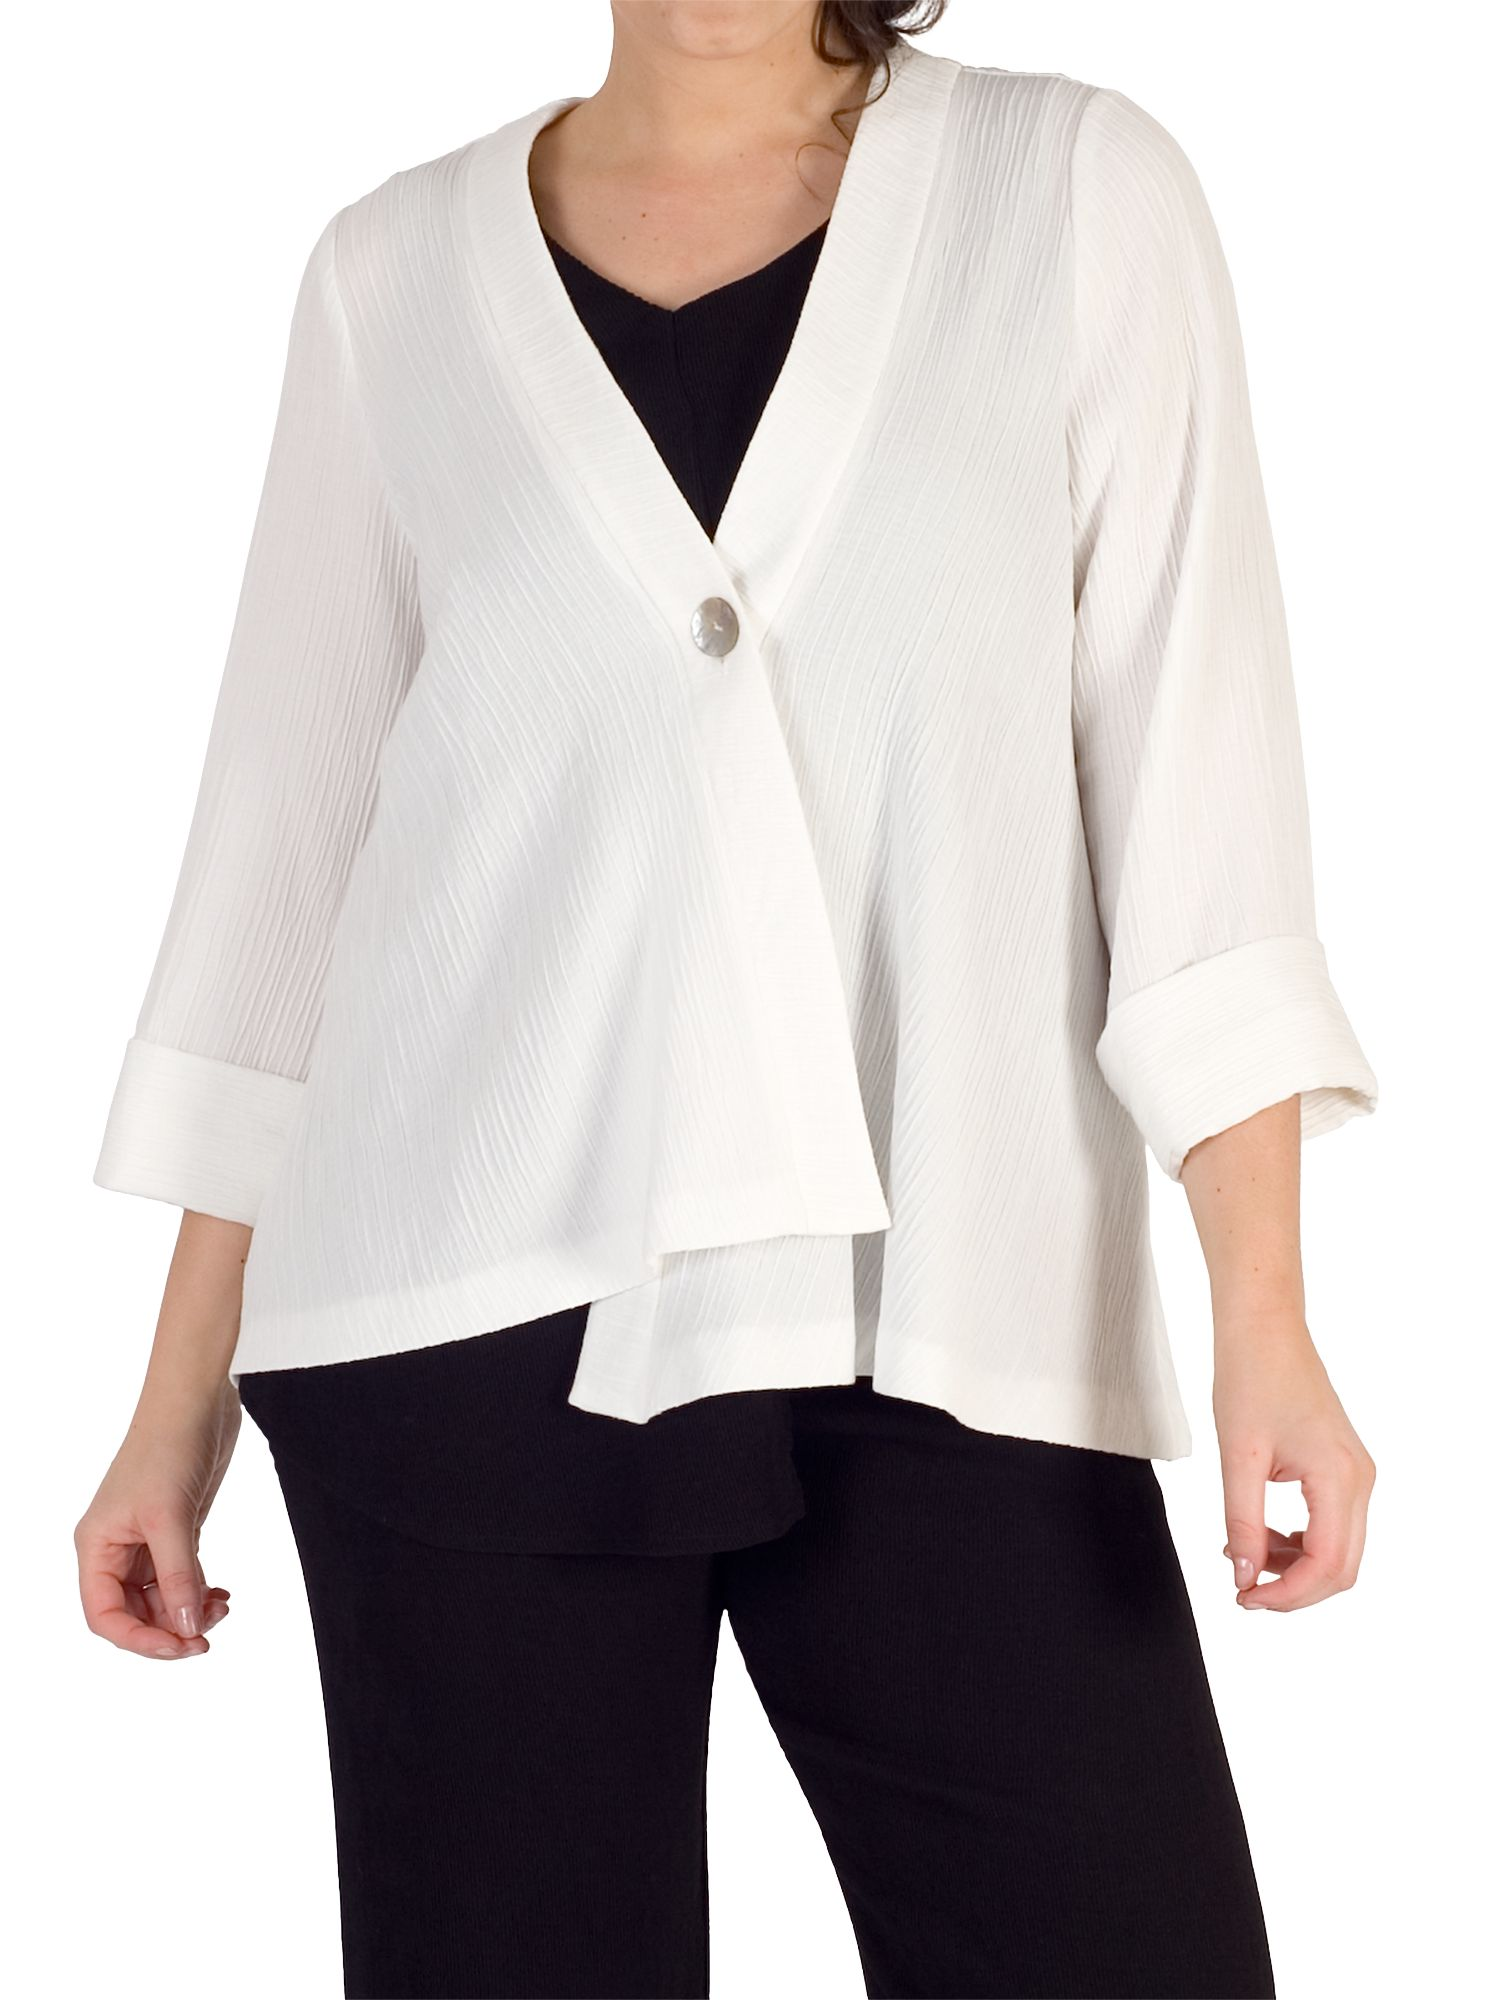 Chesca Chesca Asymmetric Textured Jacket, Ivory